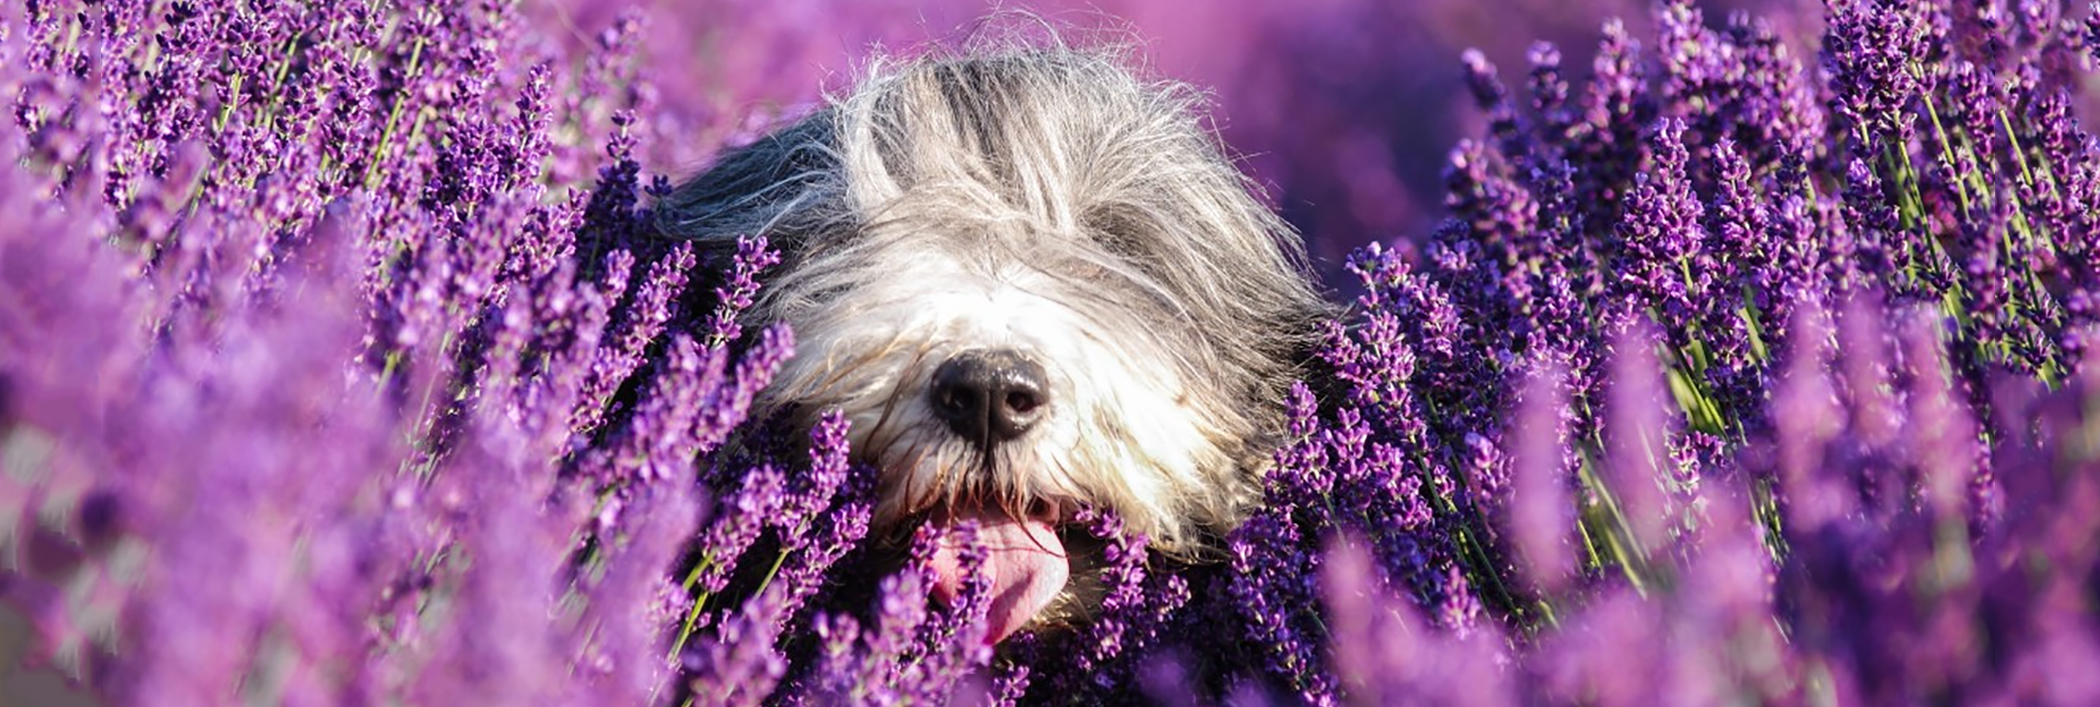 essential-oils-dog-lavender2